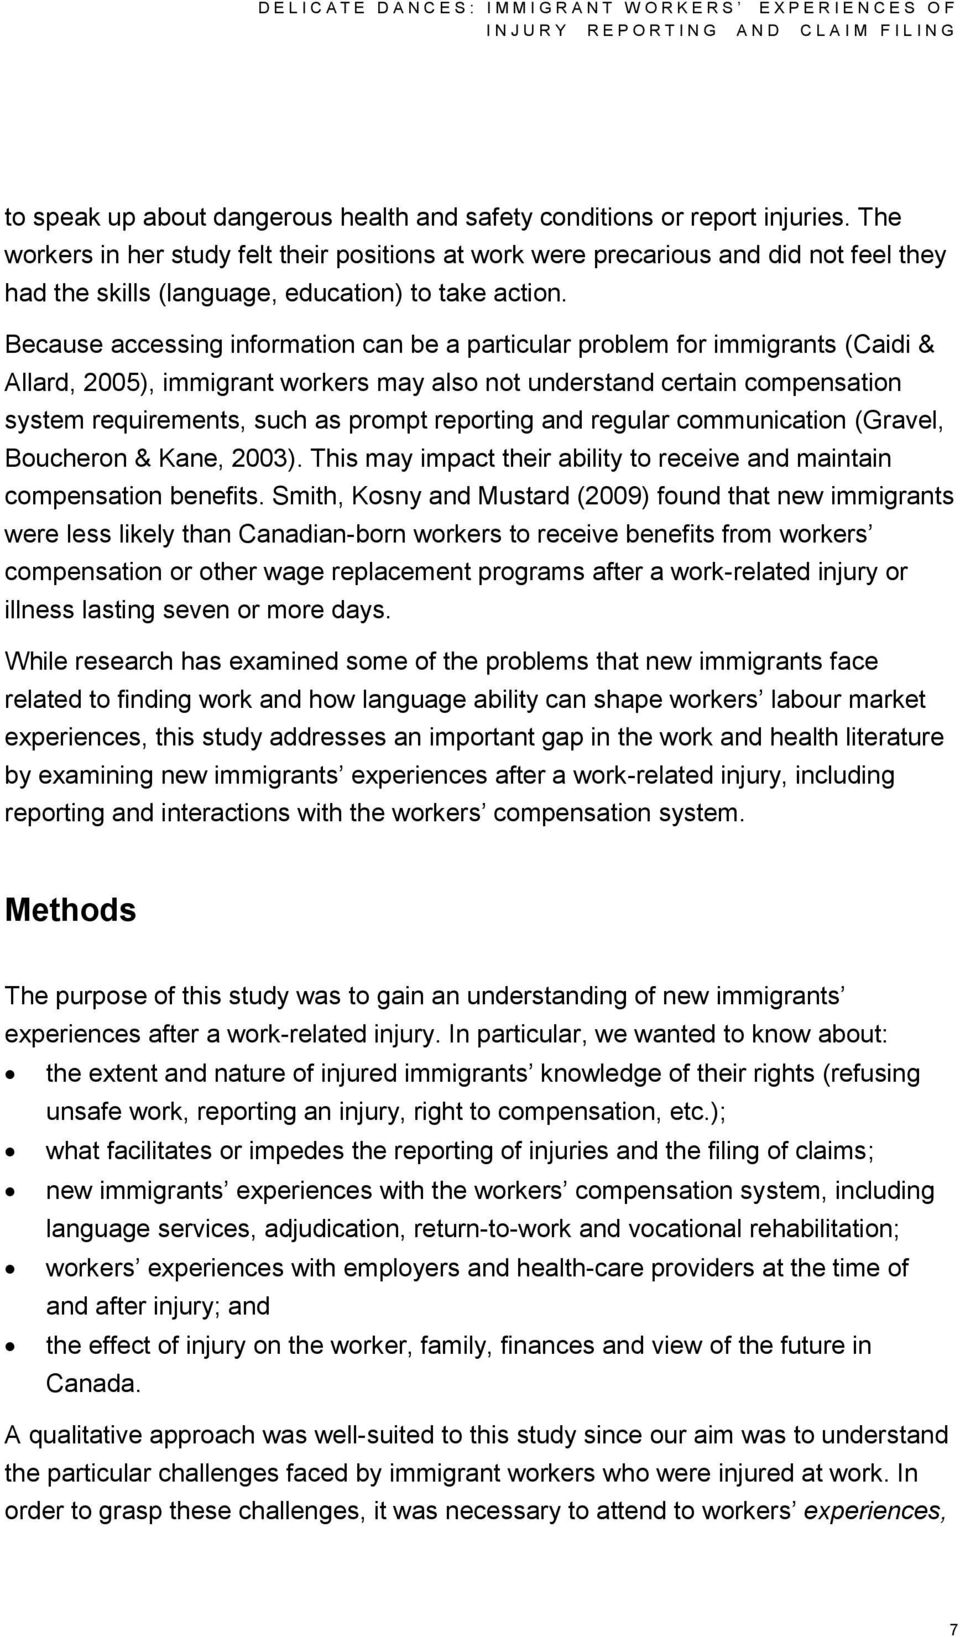 Because accessing information can be a particular problem for immigrants (Caidi & Allard, 2005), immigrant workers may also not understand certain compensation system requirements, such as prompt